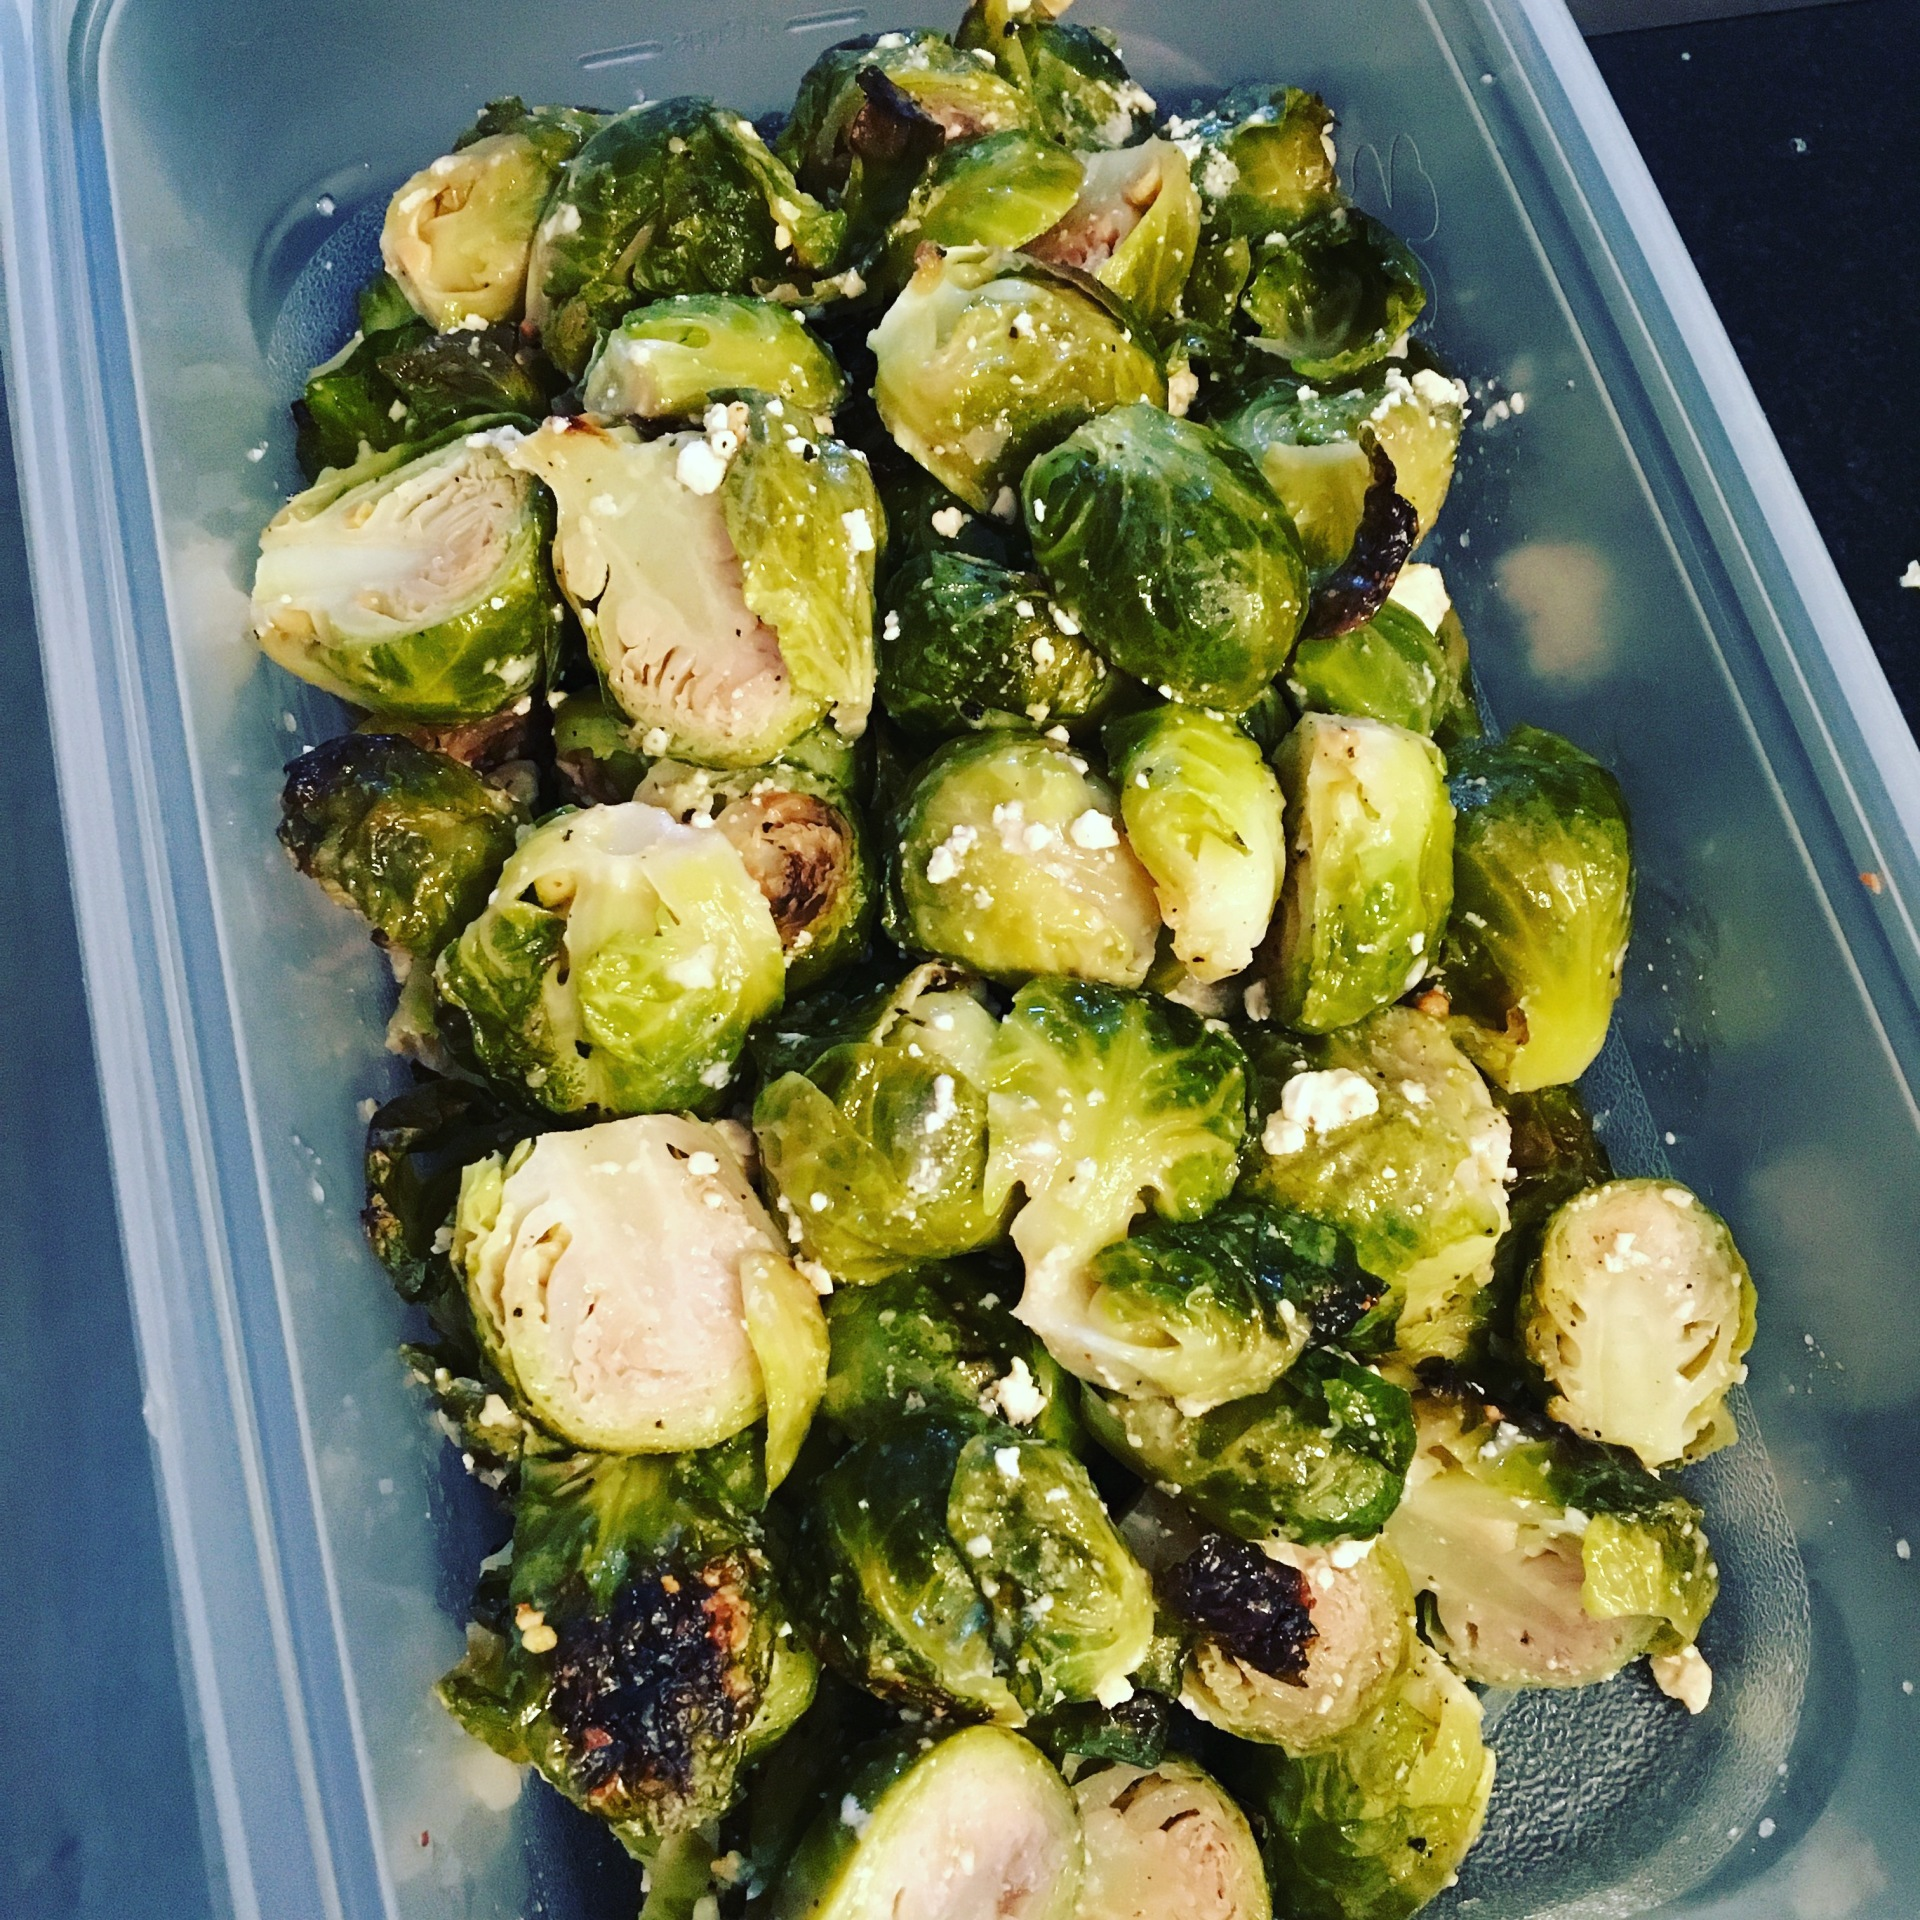 I Used to Hate Brussel Sprouts...Until Now